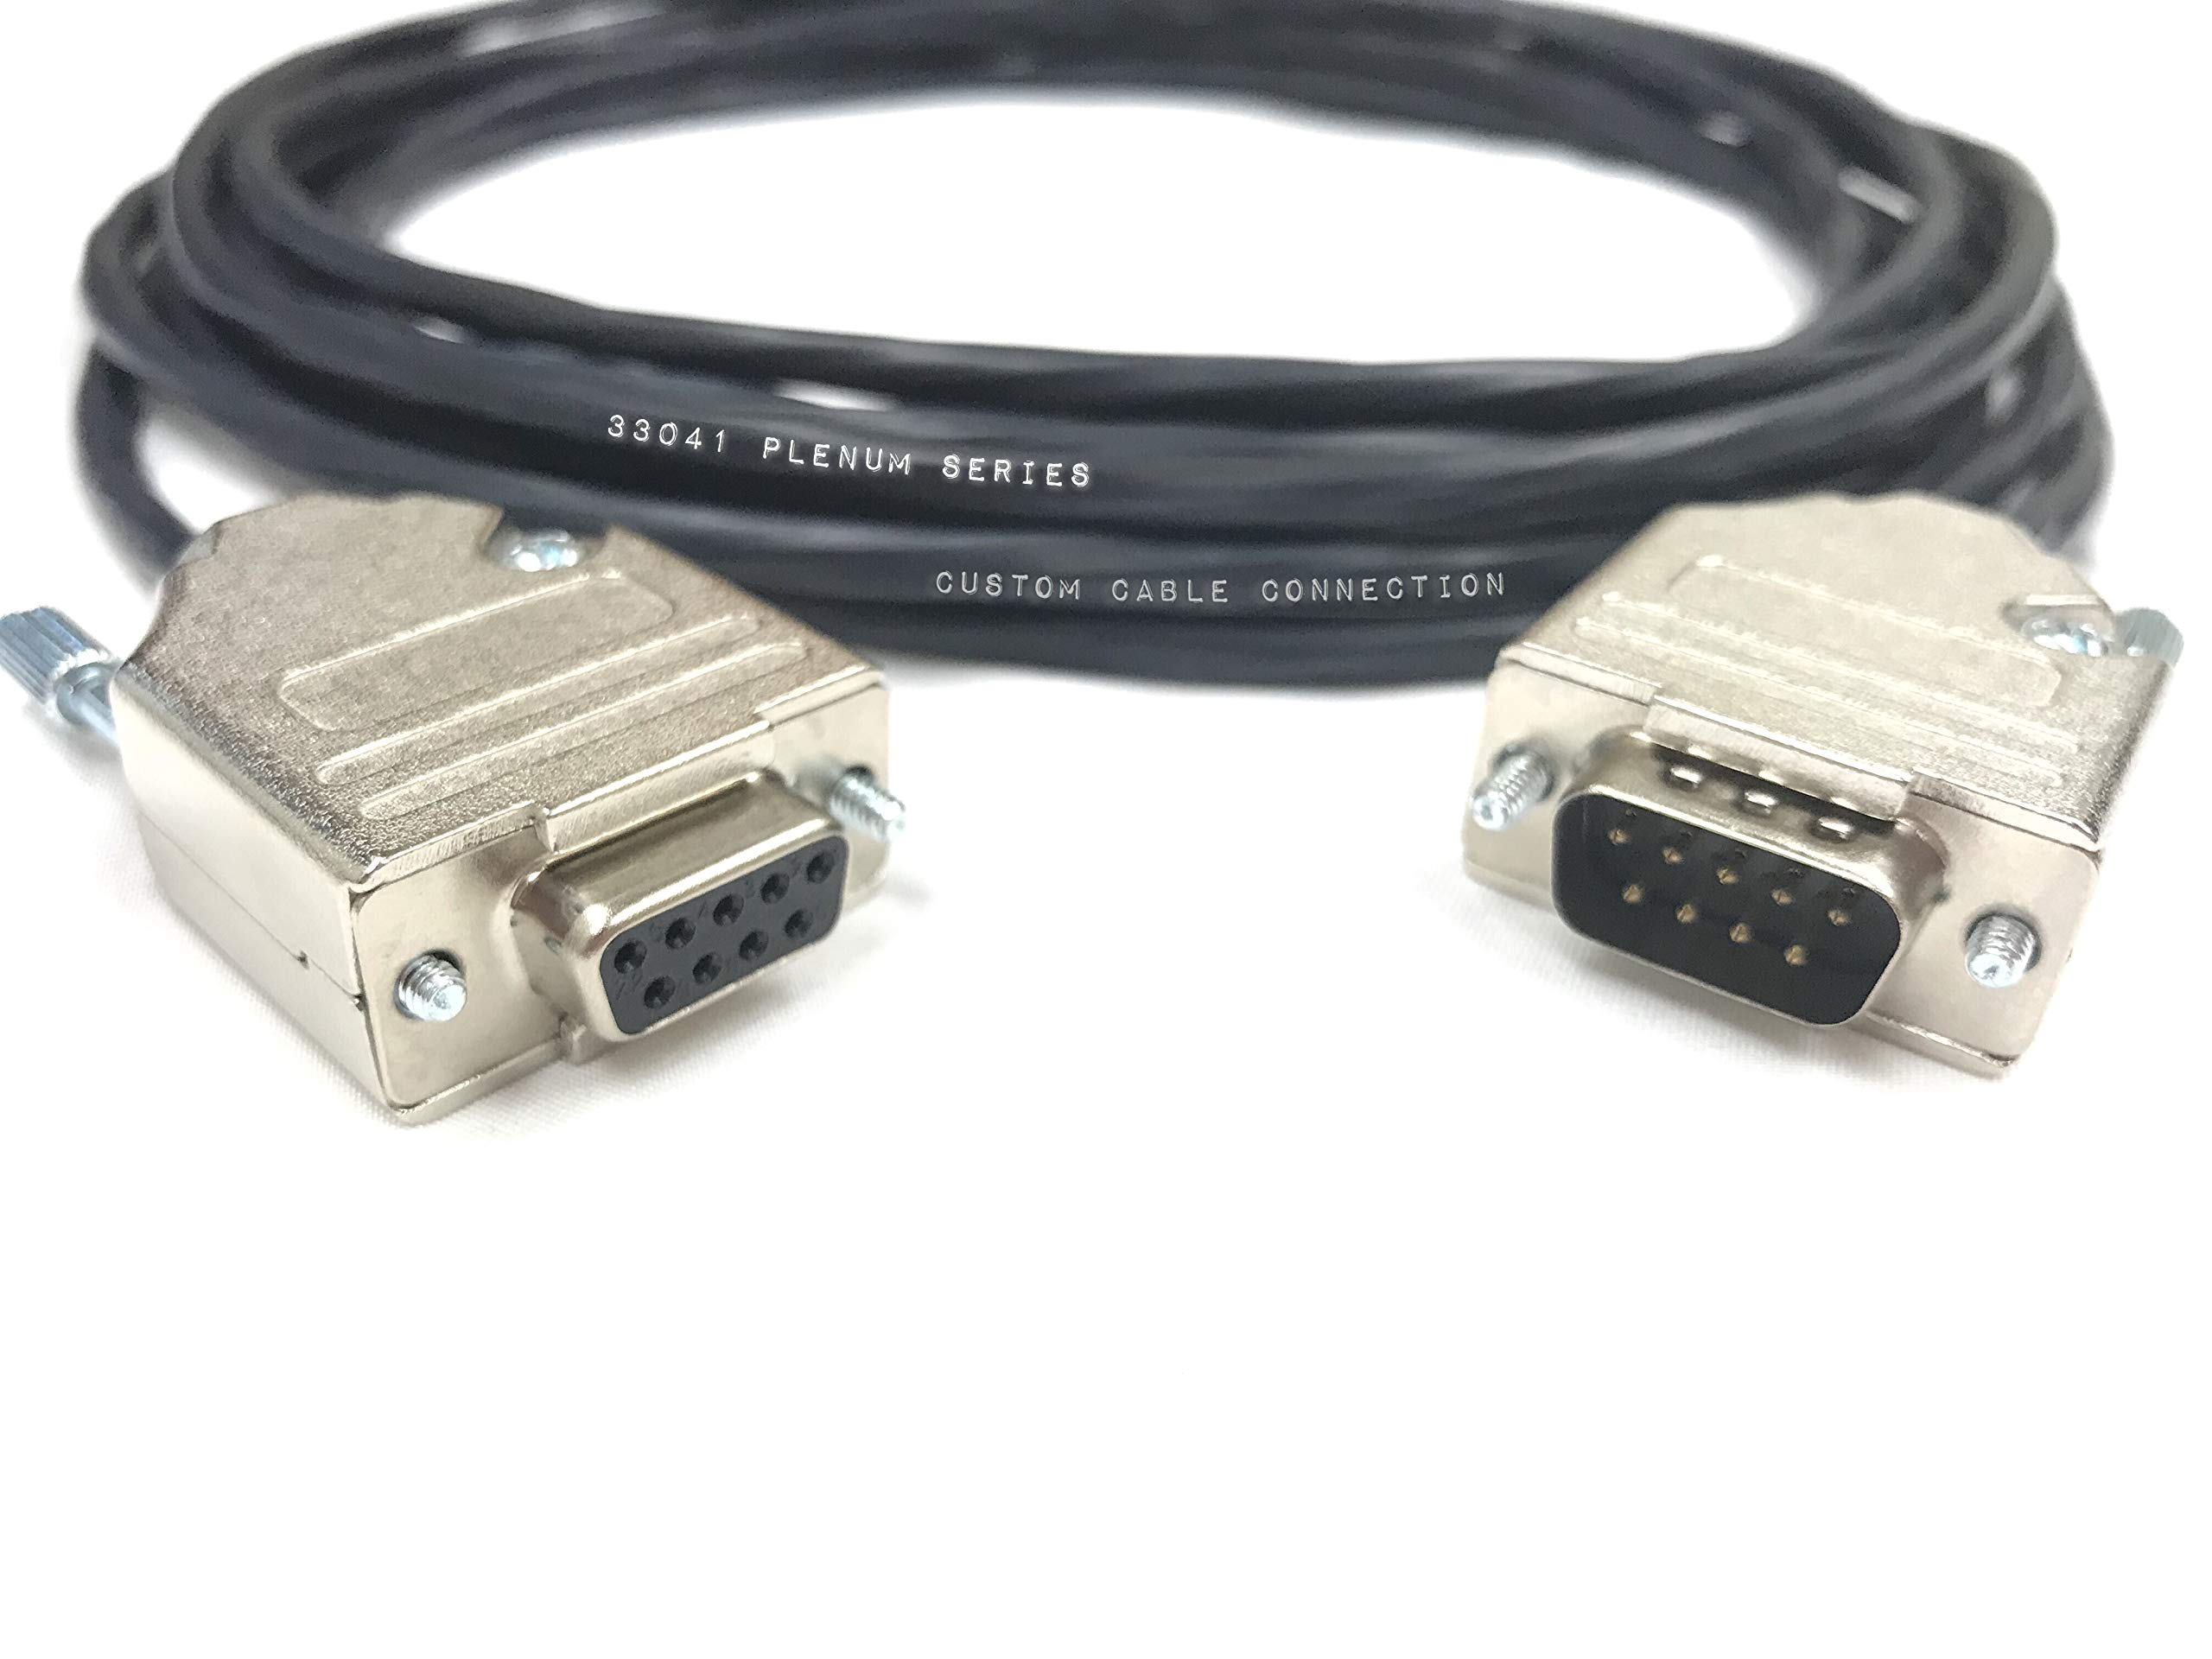 200 Foot DB9 Male to Female RS232 Extension Serial Cable - 22 AWG with Plenum Black Jacket - Made in USA by Custom Cable Connection